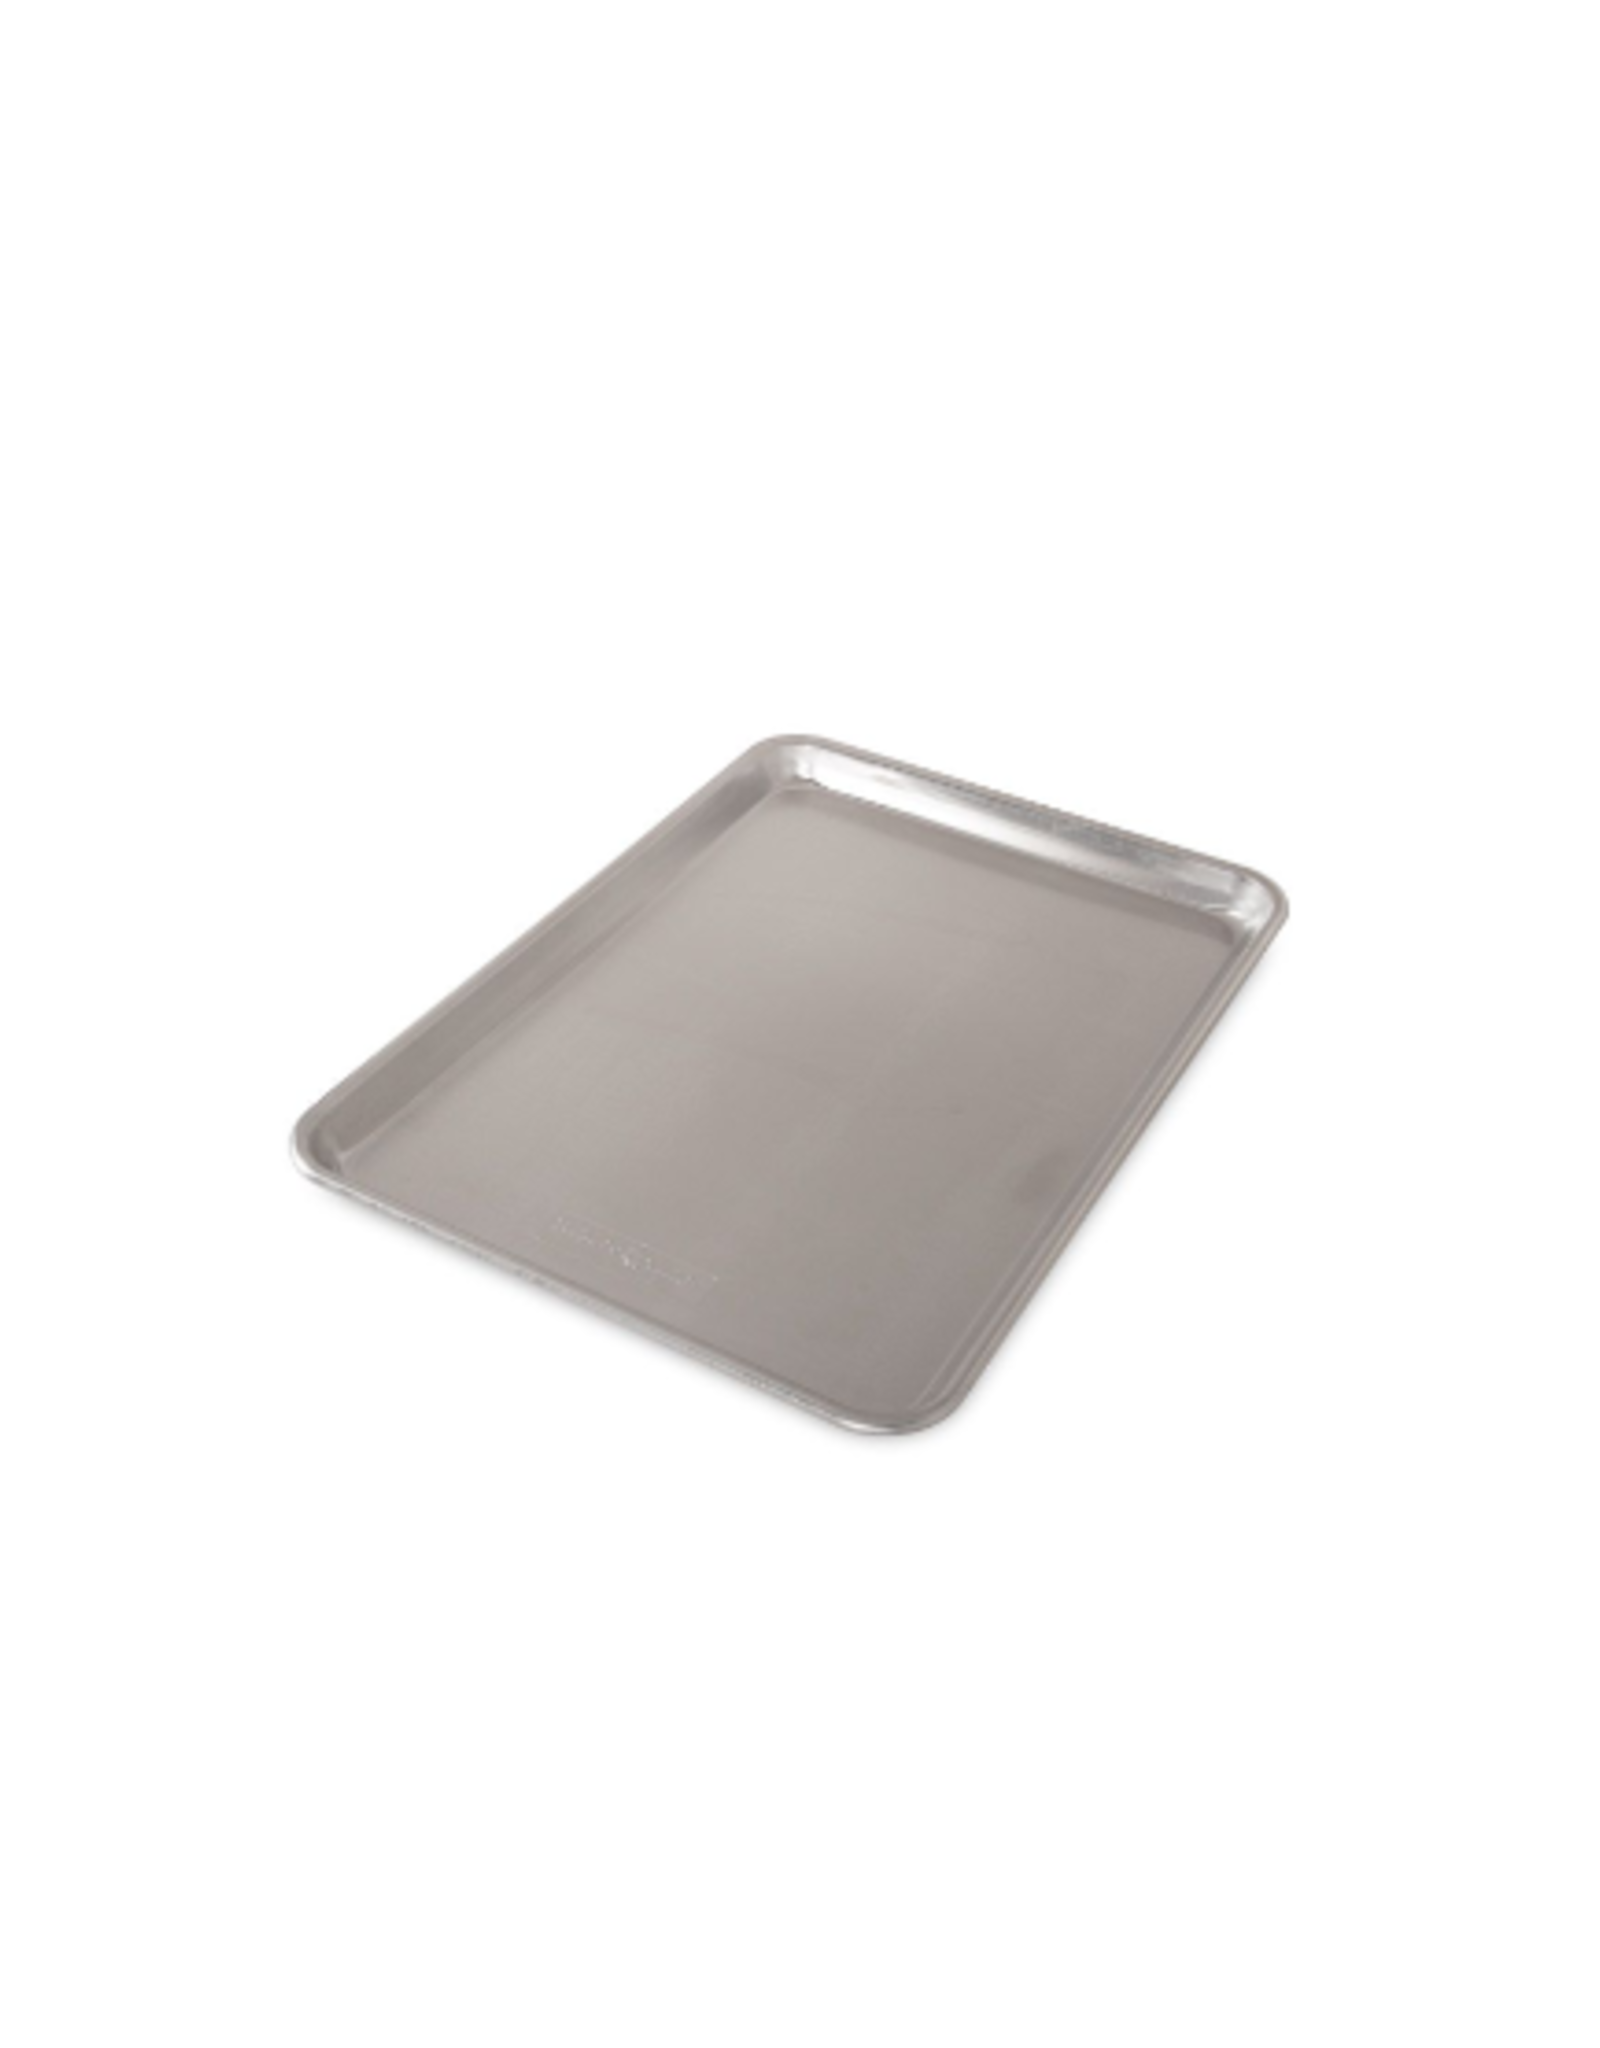 Nordicware Jelly Roll Pan